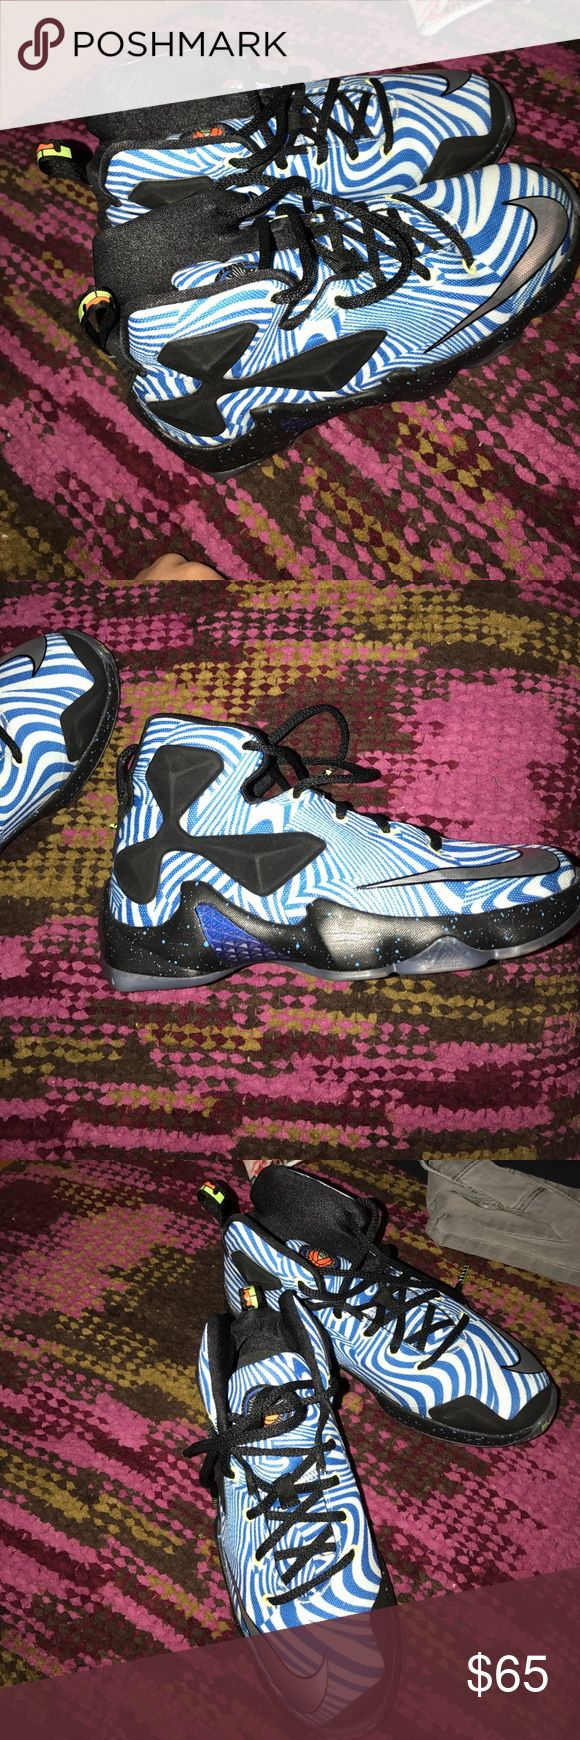 Nike Lebron James shoes / basketball / gym shoes They are Nike Lebron James basketball or simply to wear at the gym athletic shoes. They are a size 4y in youth boys which is a size 6 in women's ! Nike Shoes Athletic Shoes